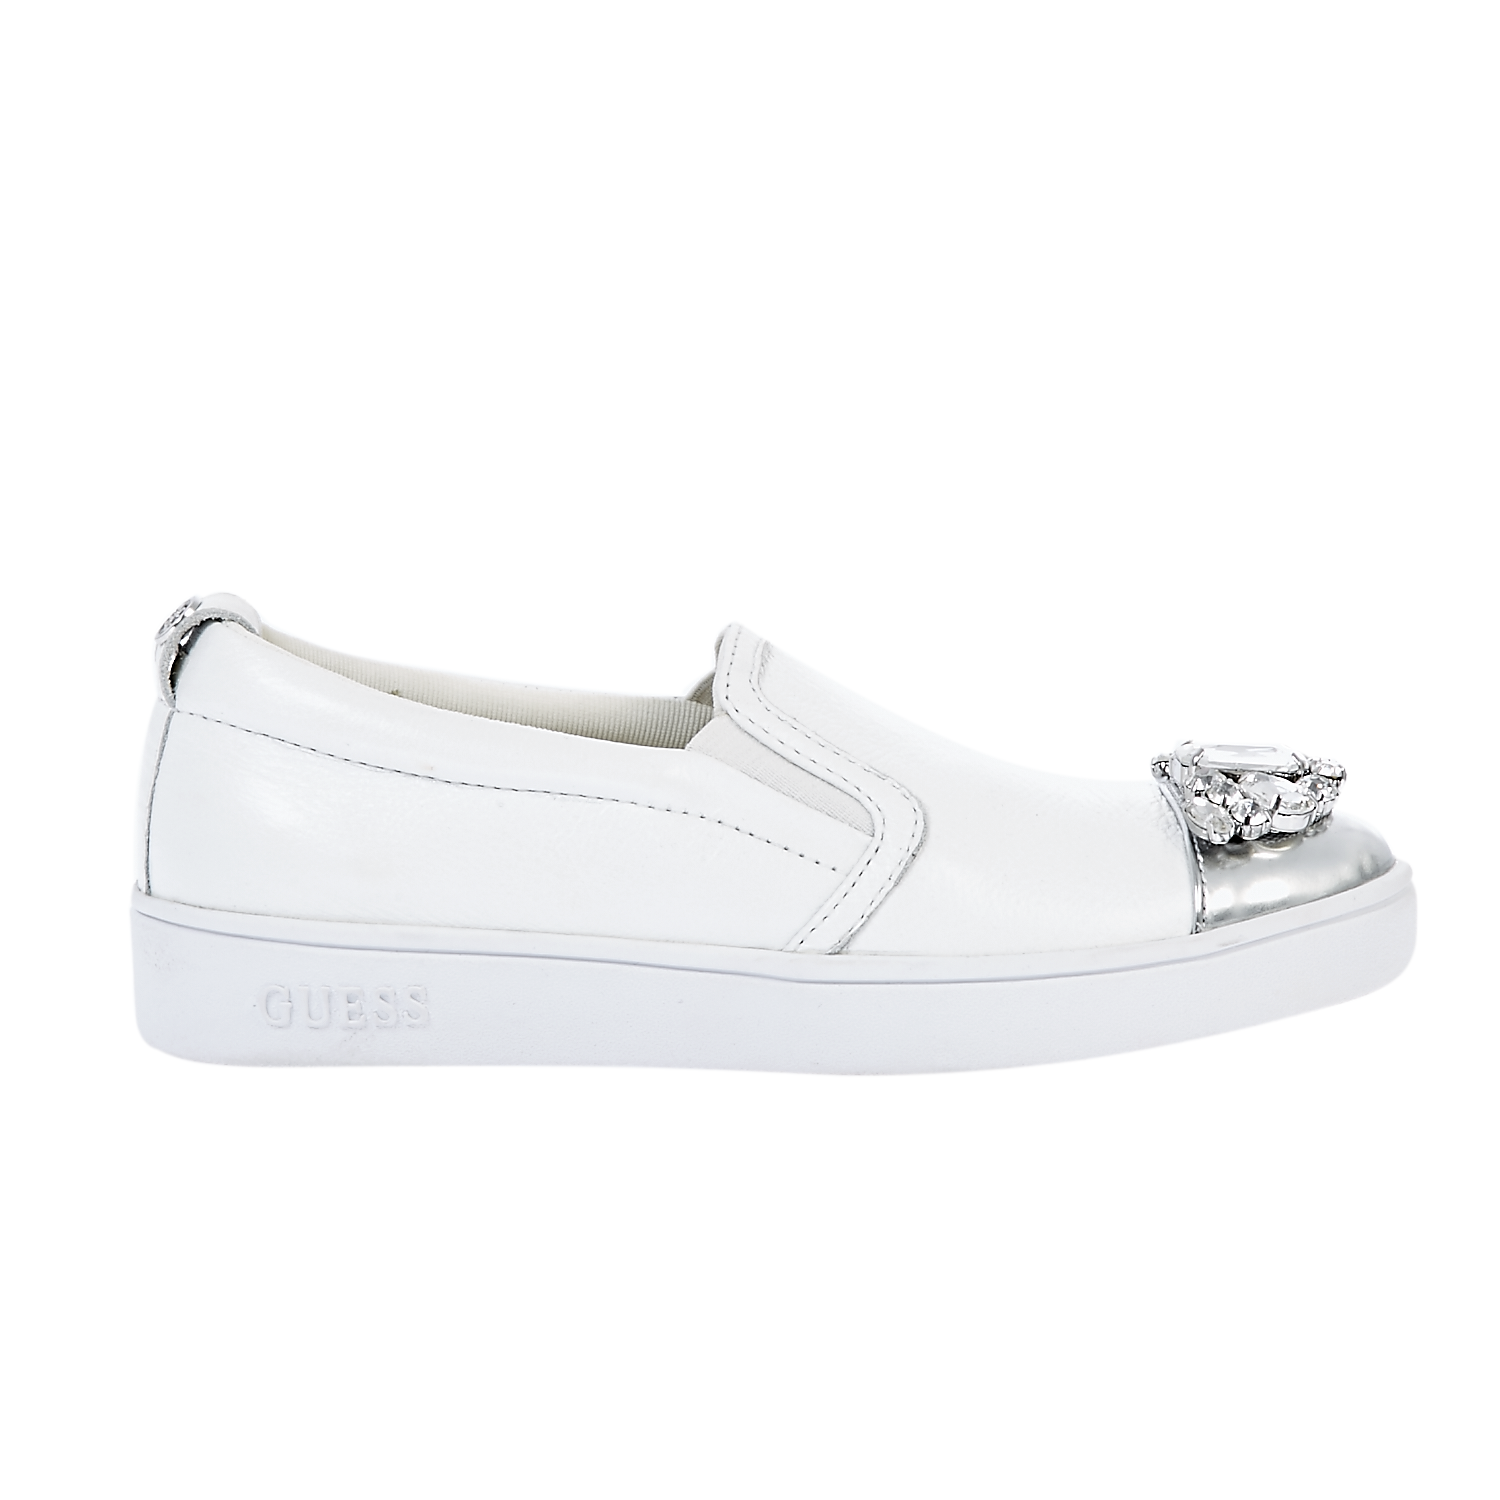 GUESS - Γυναικεία slip on παπούτσια Guess λευκά ⋆ EliteShoes.gr 8c480caa1eb